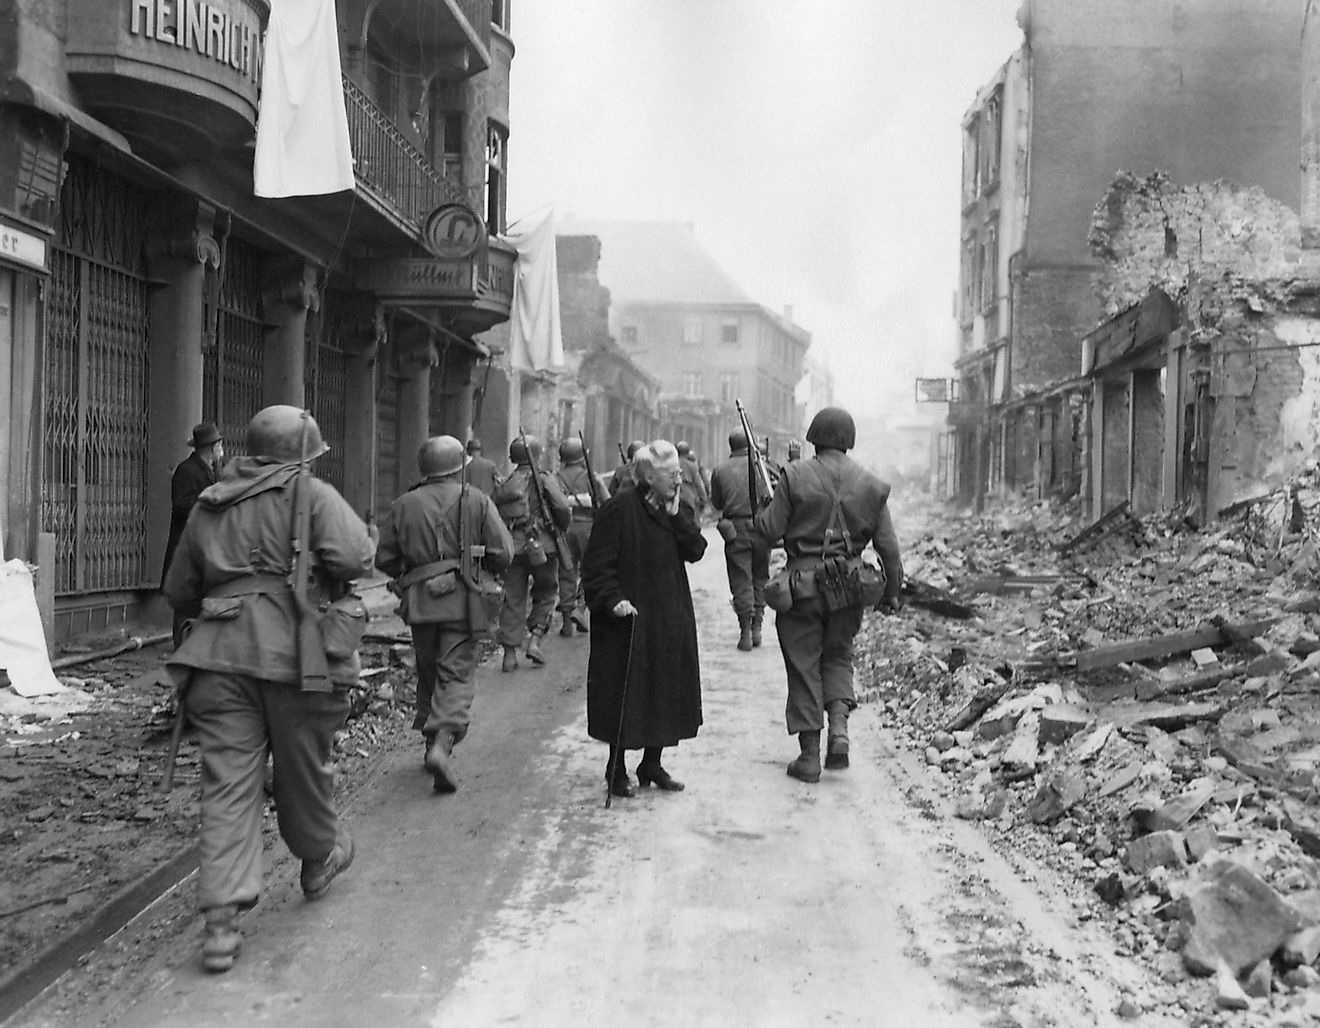 Infantrymen march through a German town at the end of WWII. Image credit: Everett Collection/Shutterstock